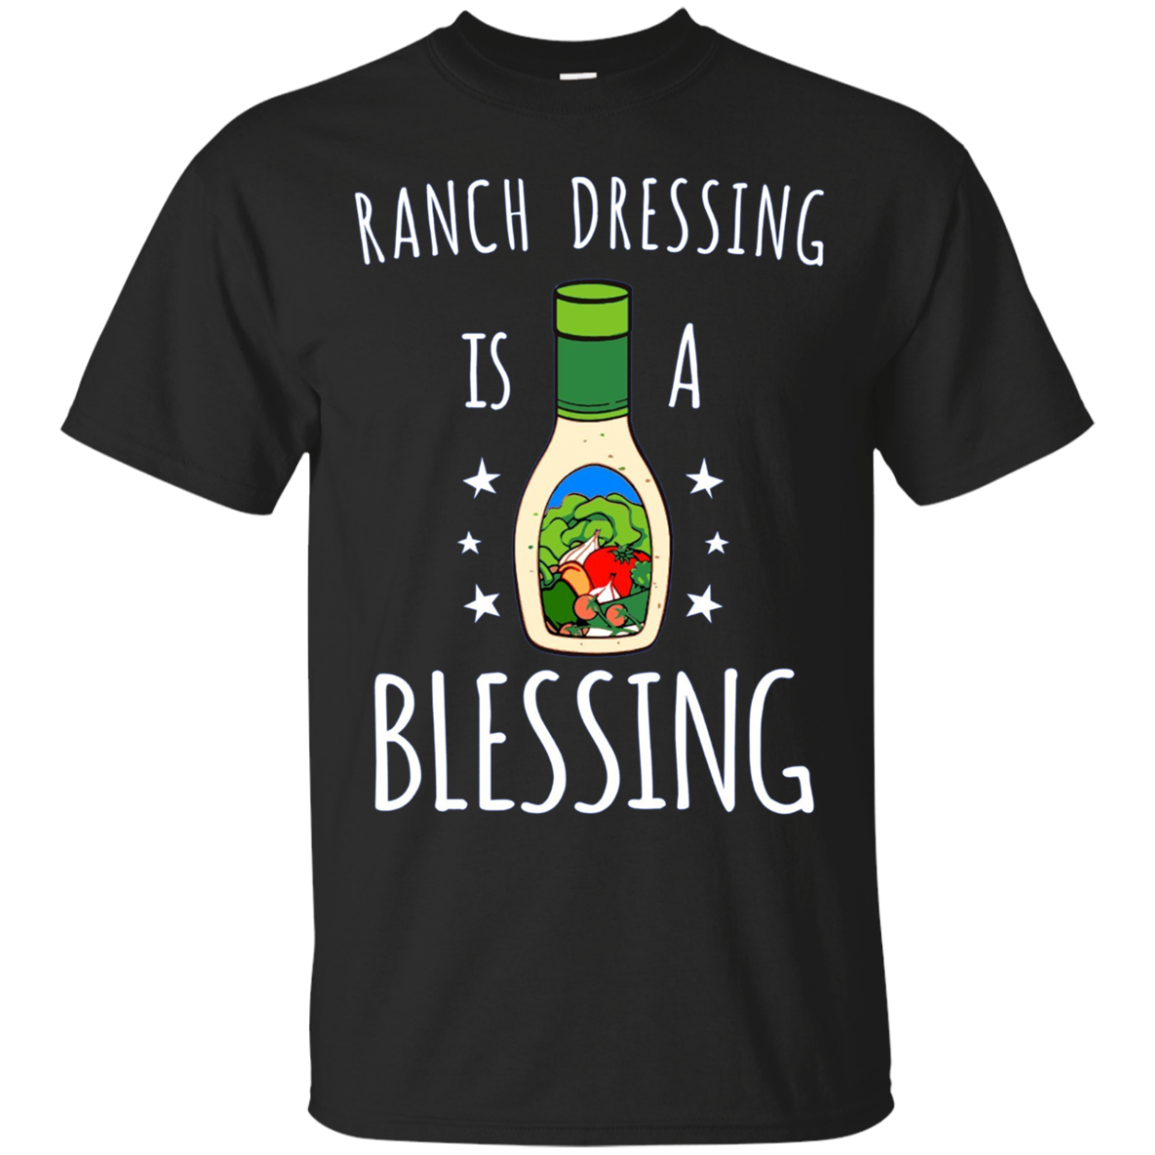 Ranch Dressing Is A Blessing Long Sleeve Tshirt - Cool Vegan